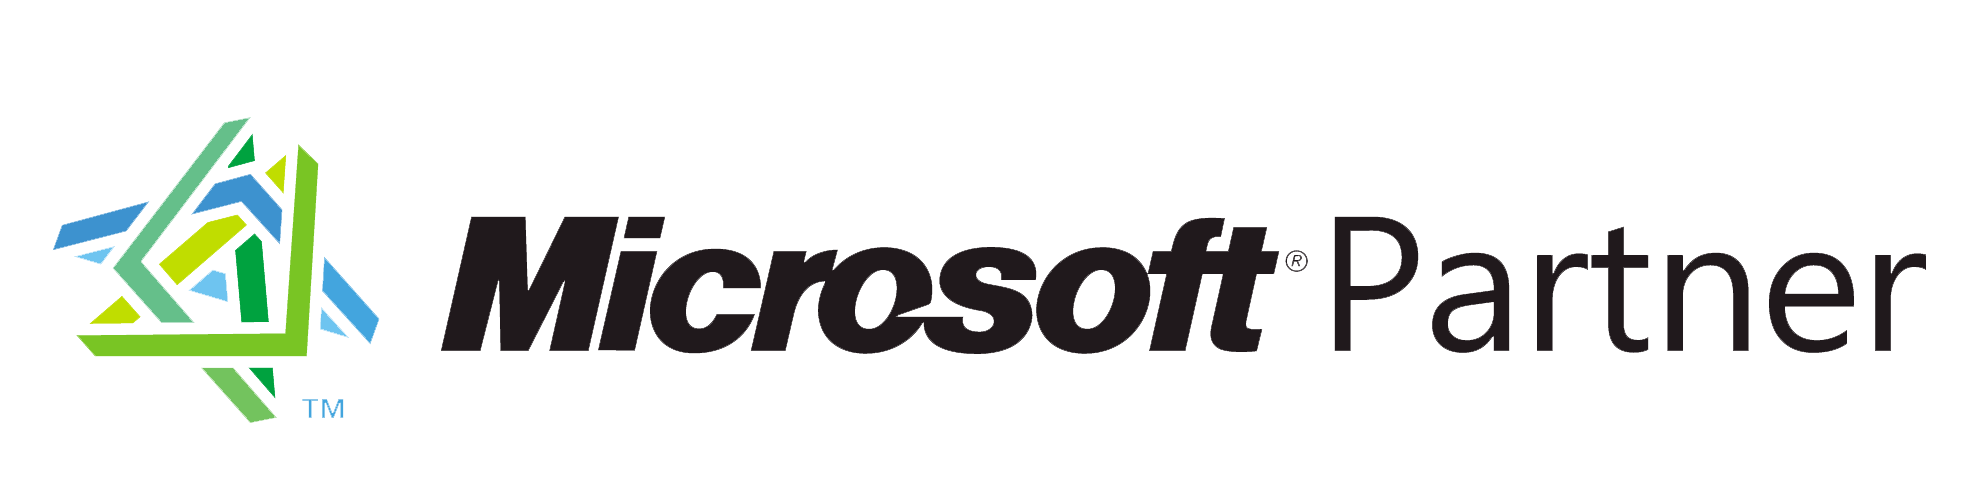 bahrain cloud microsoft partner logo transparent